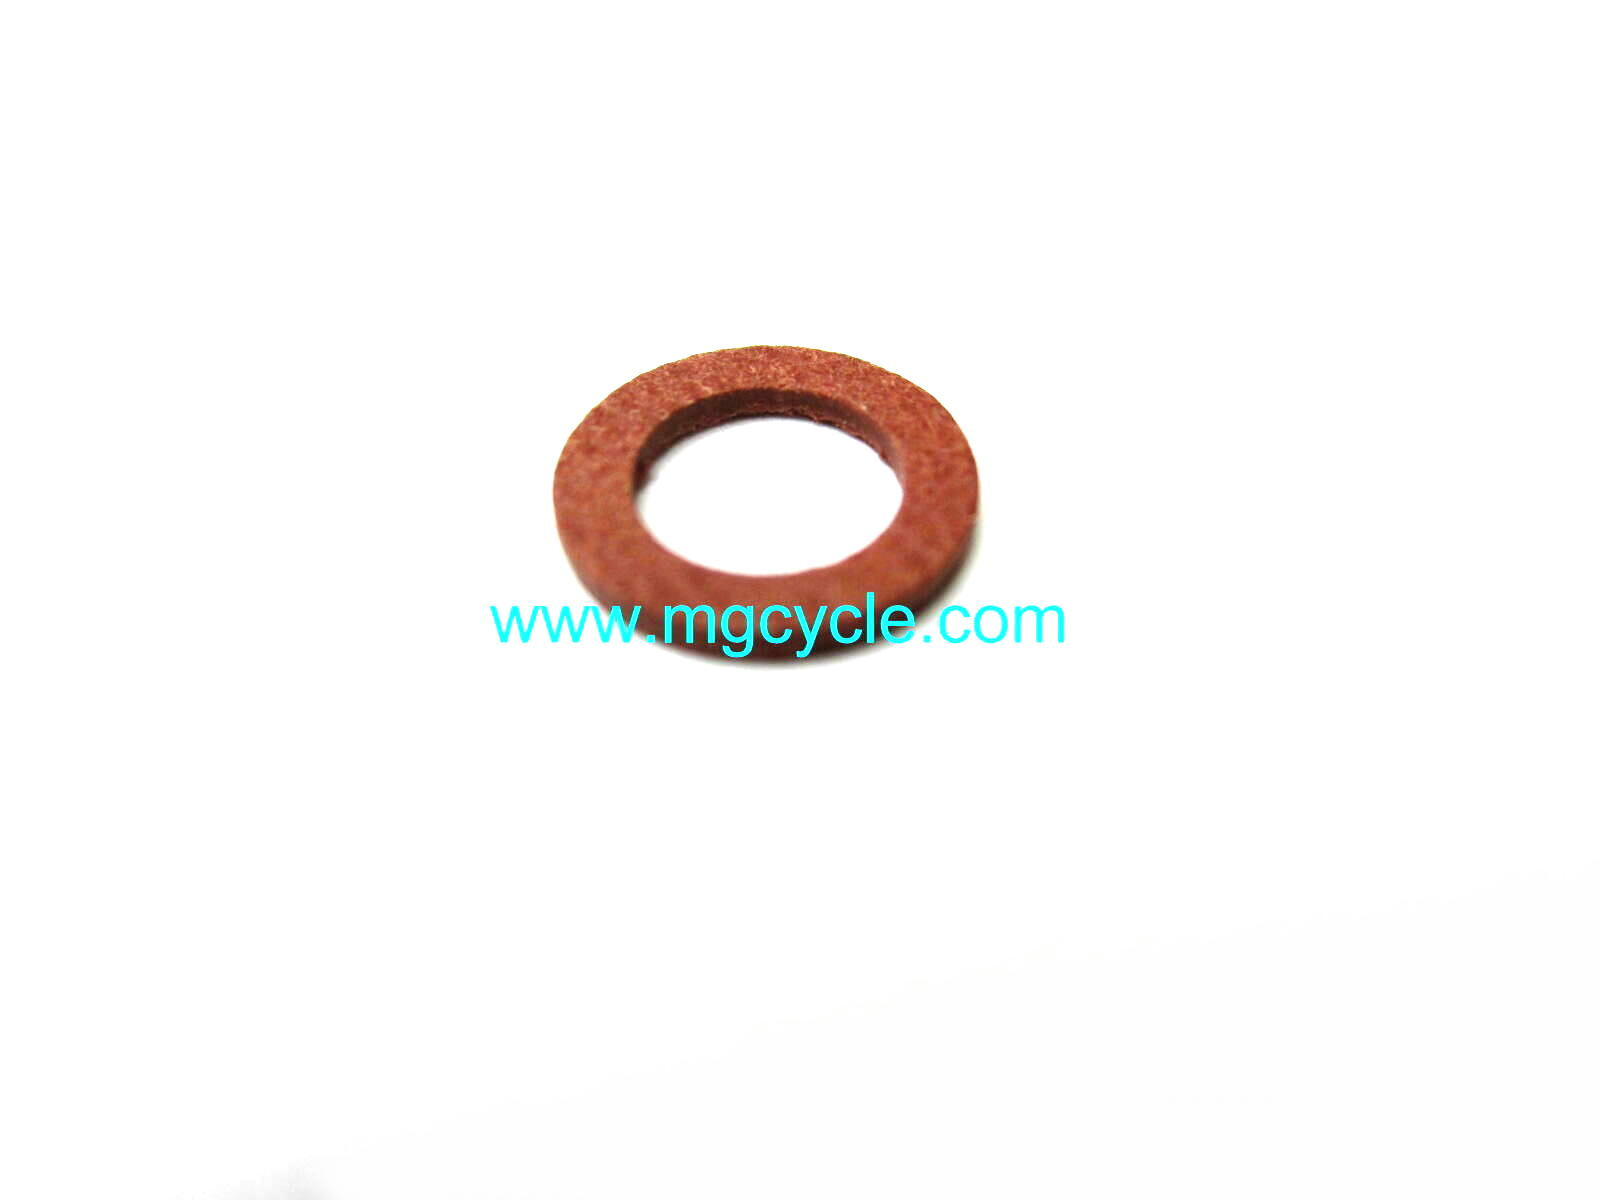 fiber 6mm sealing washer, fork drain, carb synch plug